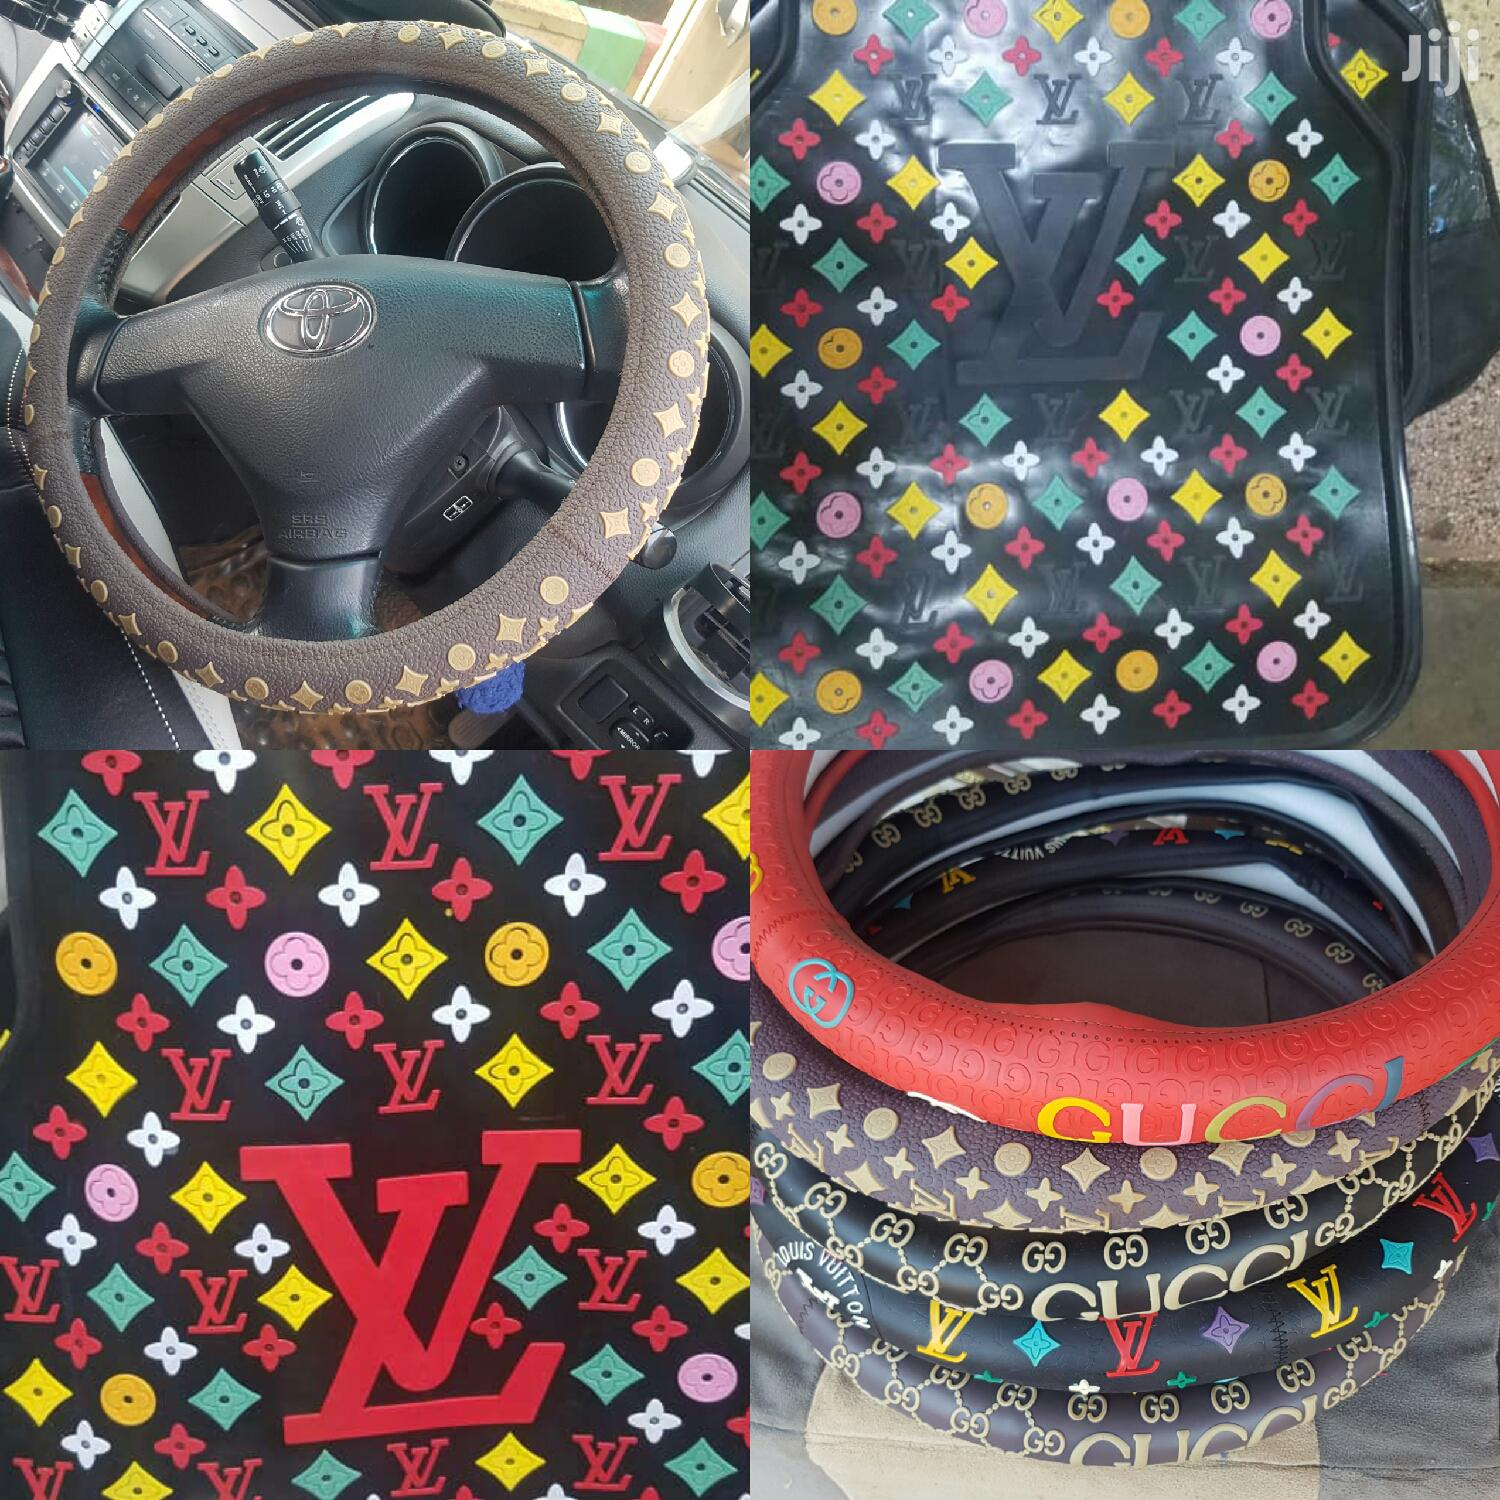 Rubbrr Steering Covers and Mats